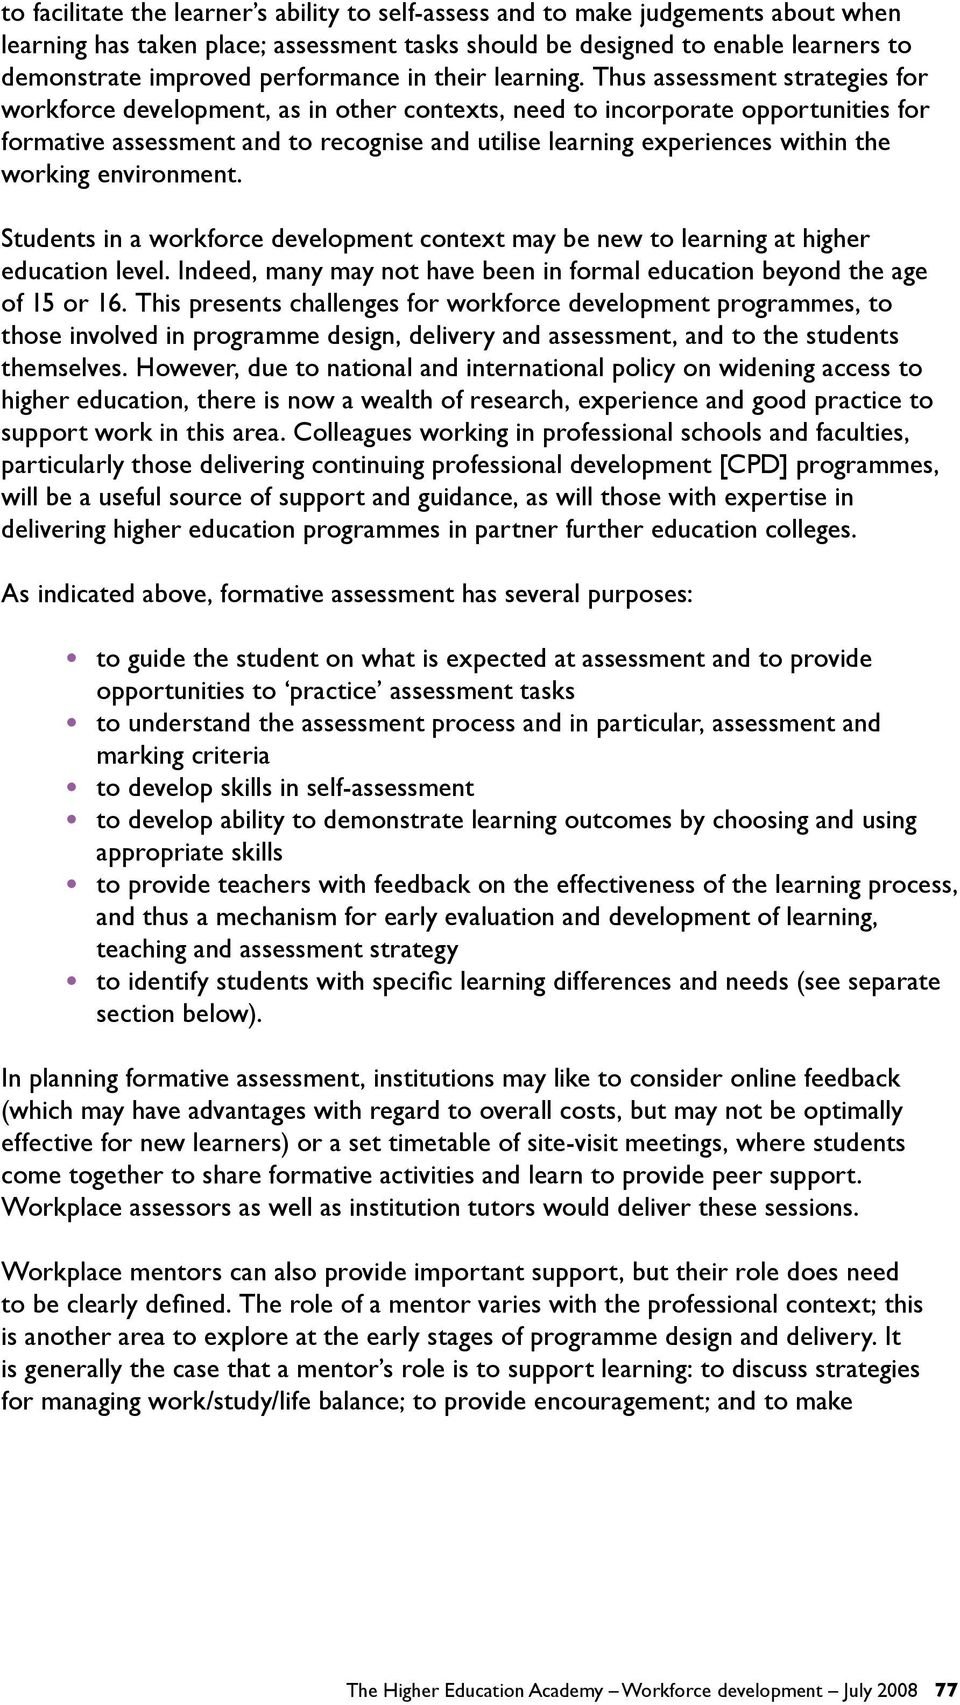 Thus assessment strategies for workforce development, as in other contexts, need to incorporate opportunities for formative assessment and to recognise and utilise learning experiences within the